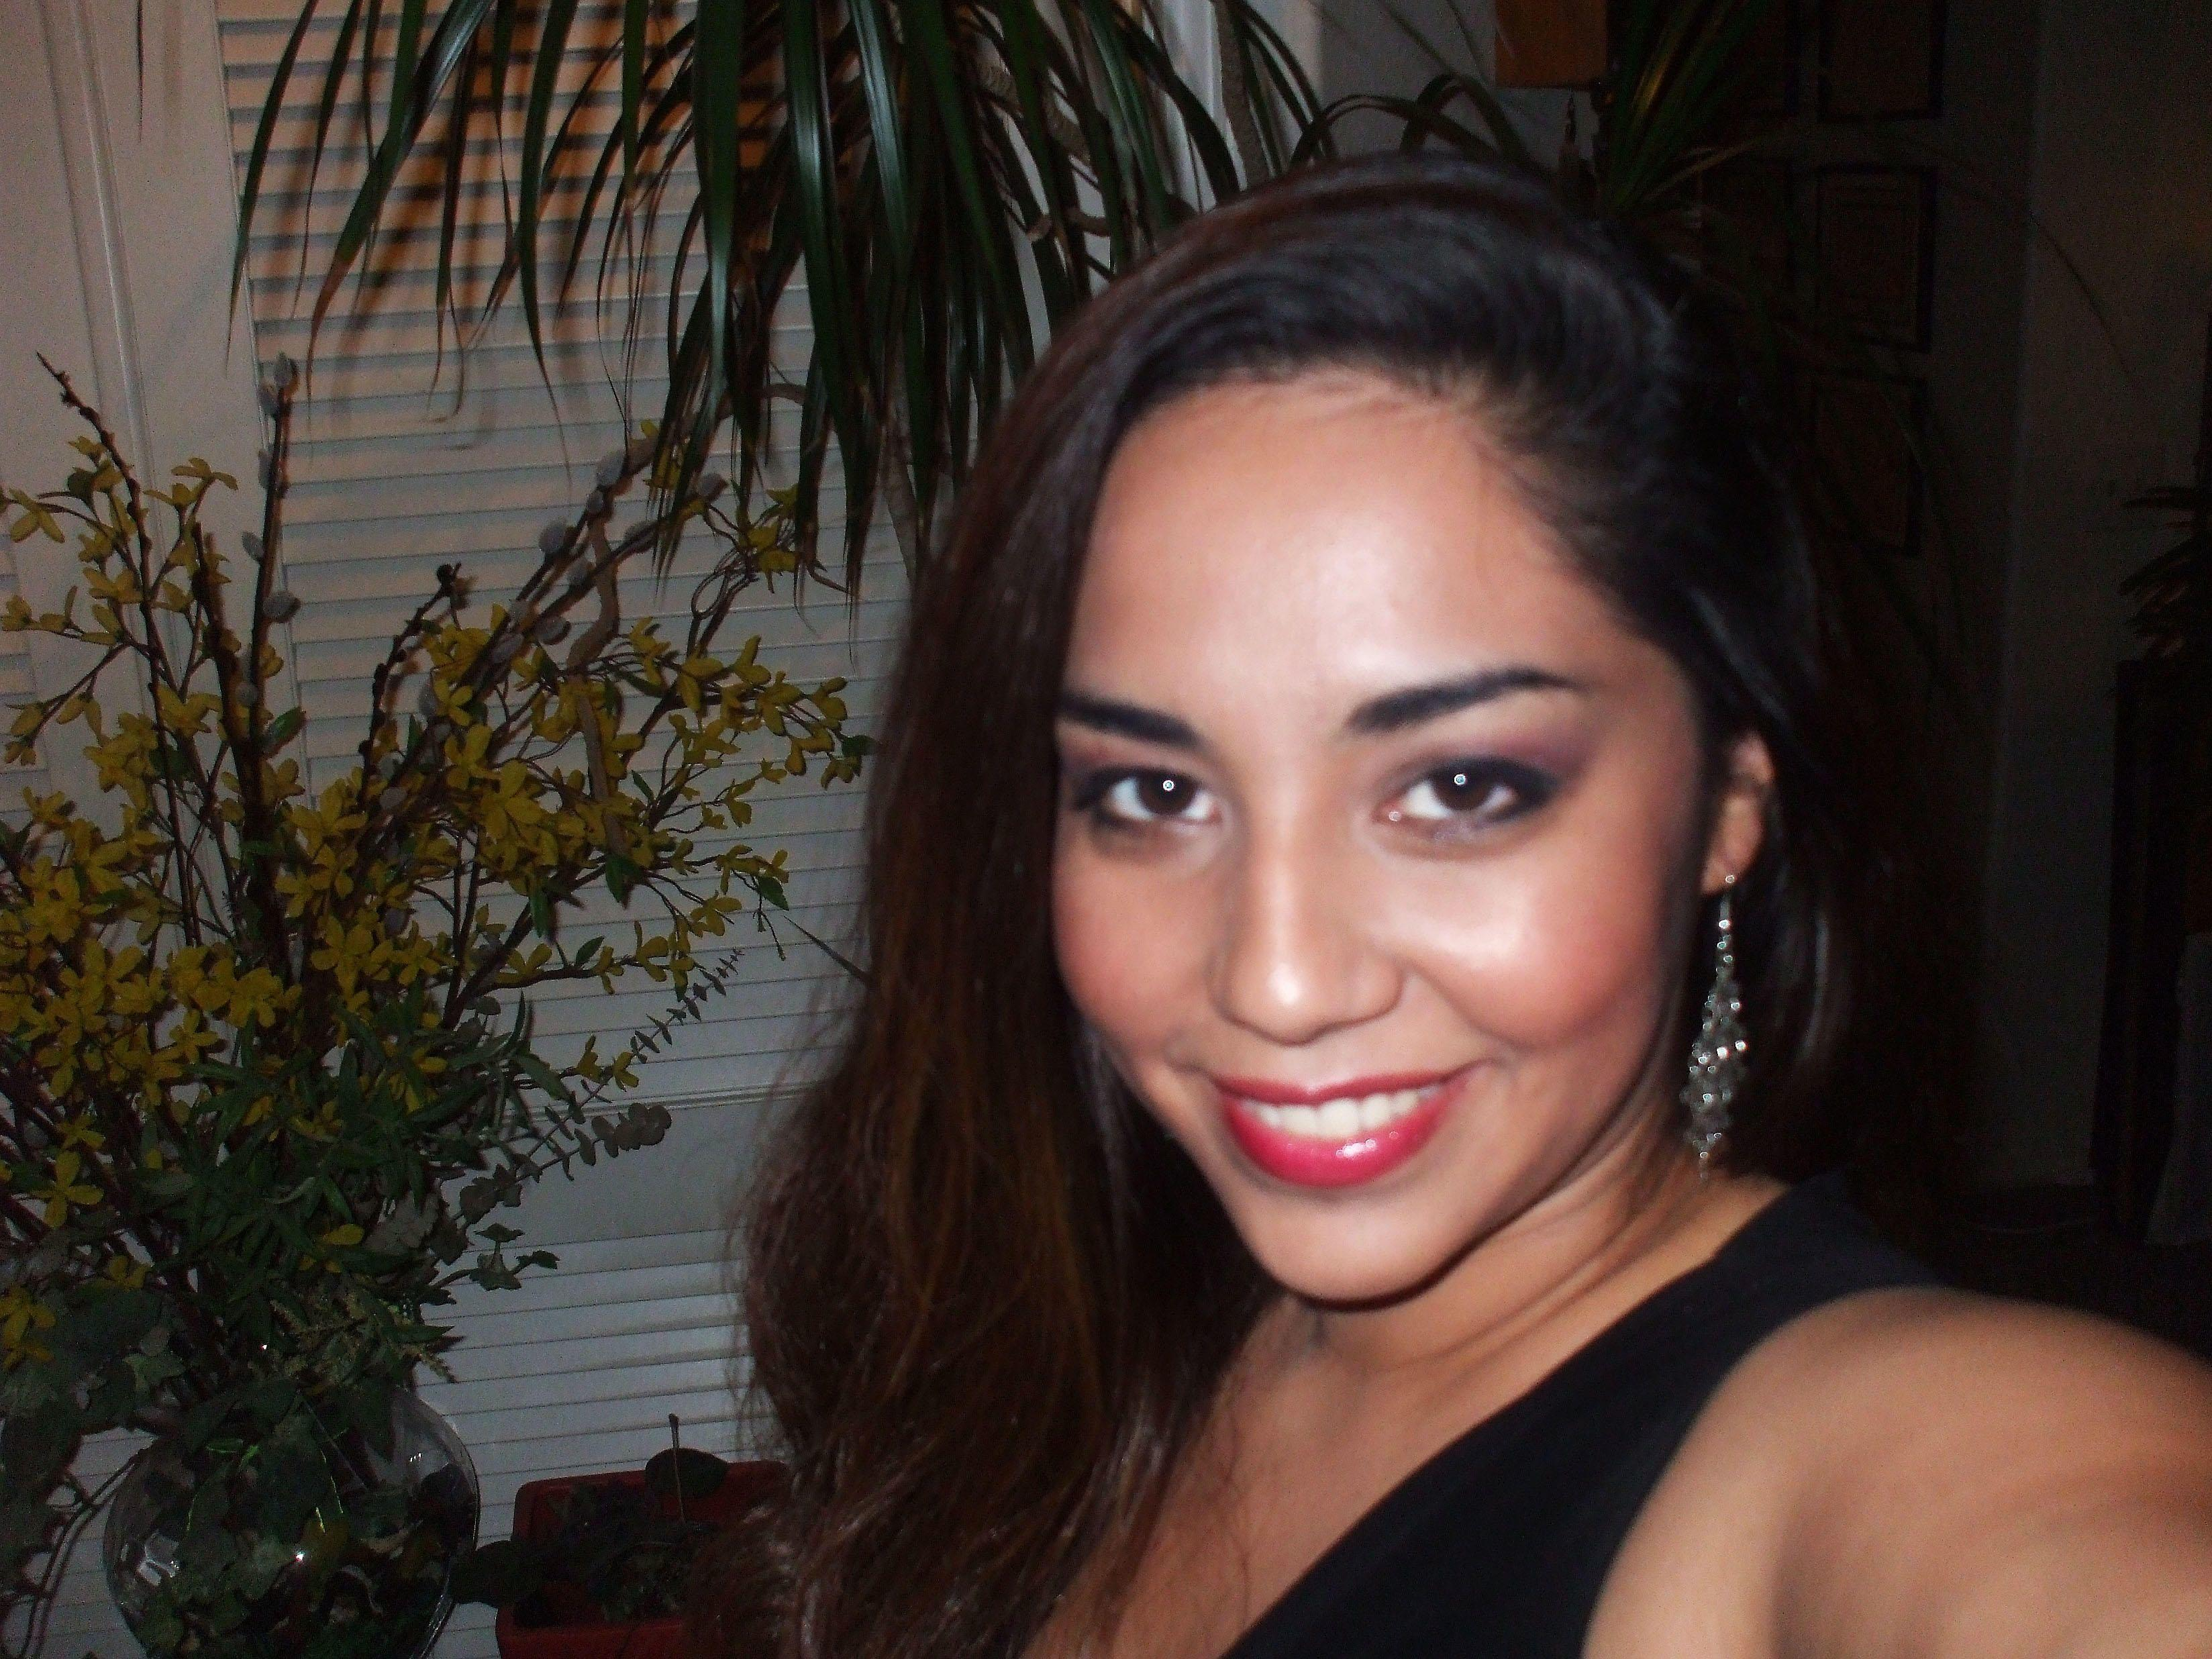 How To Let Love Find You: Love Yourself First! - The Ranting Latina!